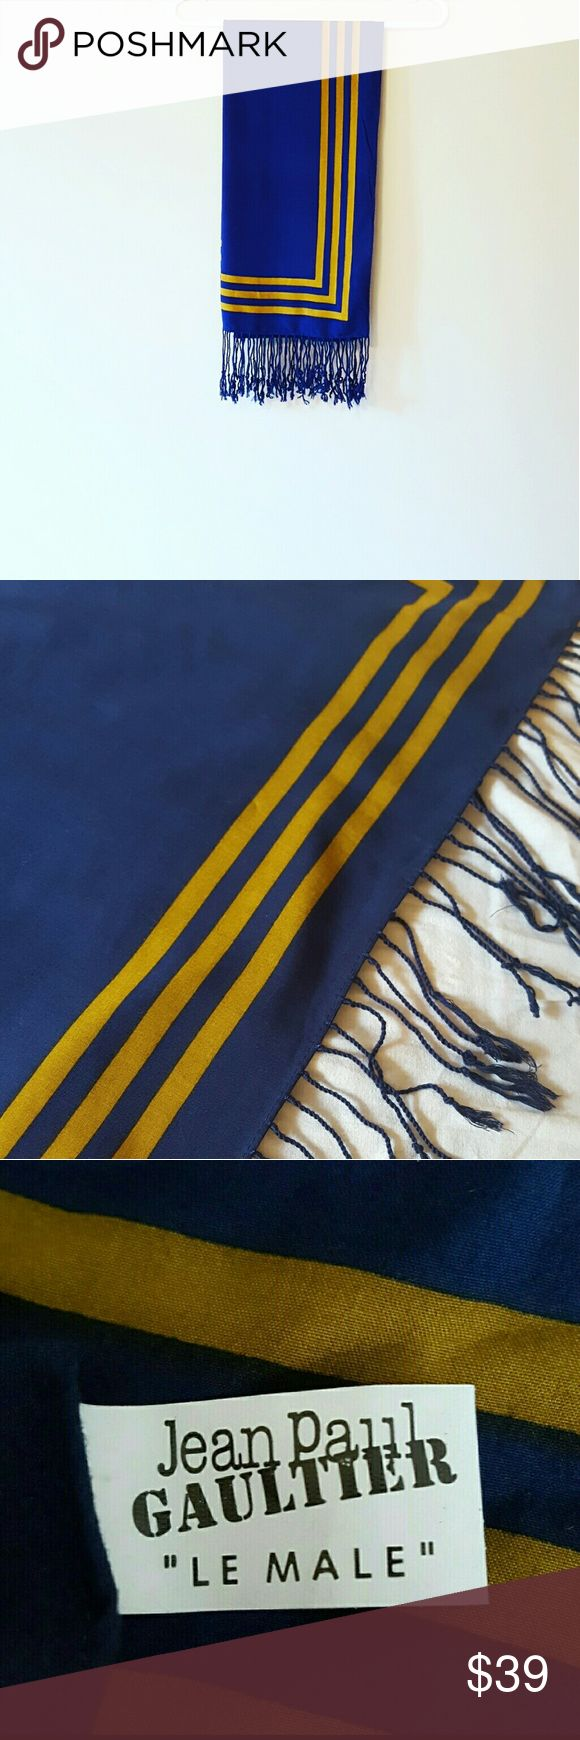 "Jean Paul Gaultier ""Le Male"" Scarf Jean Paul Gaultier ""Le Male"" Scarf 35"" x 36""  Fringe on one edge  Royal Blue Scarf with Mustard Yellow Triple Border Top is in excellent condition  *The underside has white spotting, probably undyed thread. I have not tried washing it. *See last 2 photos for white spots 100% Viscose Jean Paul Gaultier Accessories Scarves & Wraps"